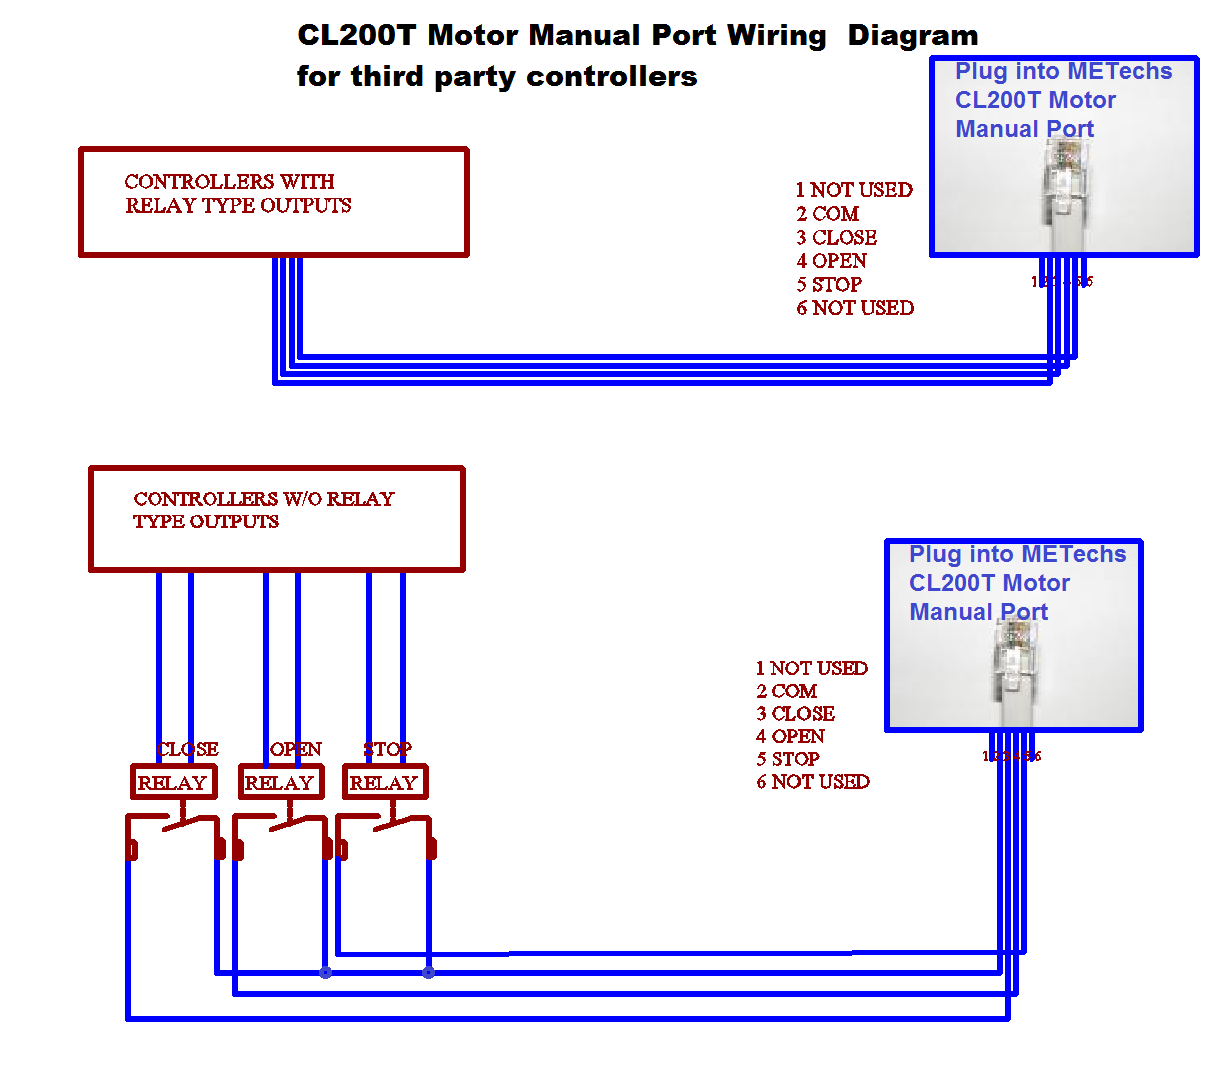 Rj14 Wiring Diagram Page 3 And Schematics Jack Related Keywords Suggestions Rj11 Phone Telephone Data Diagrams Source 19 Images Mifinder Co Rj 1 4 Connector